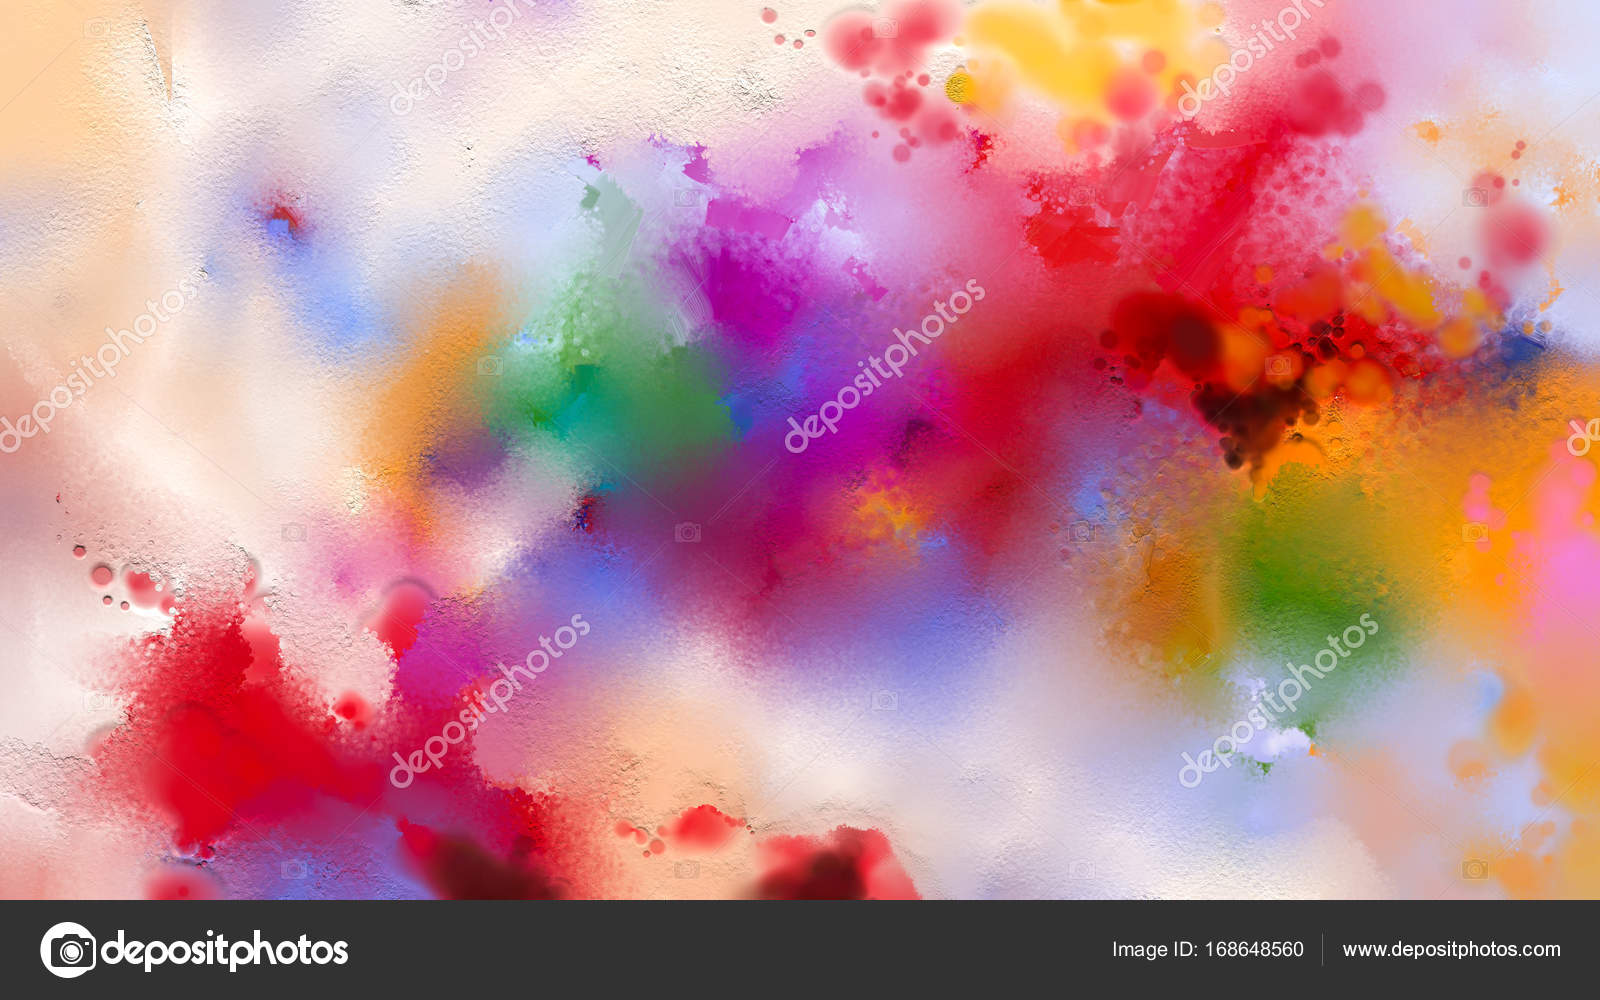 Abstract Colorful Oil Painting On Canvas Texture Hand Drawn Brush Stroke Color Paintings